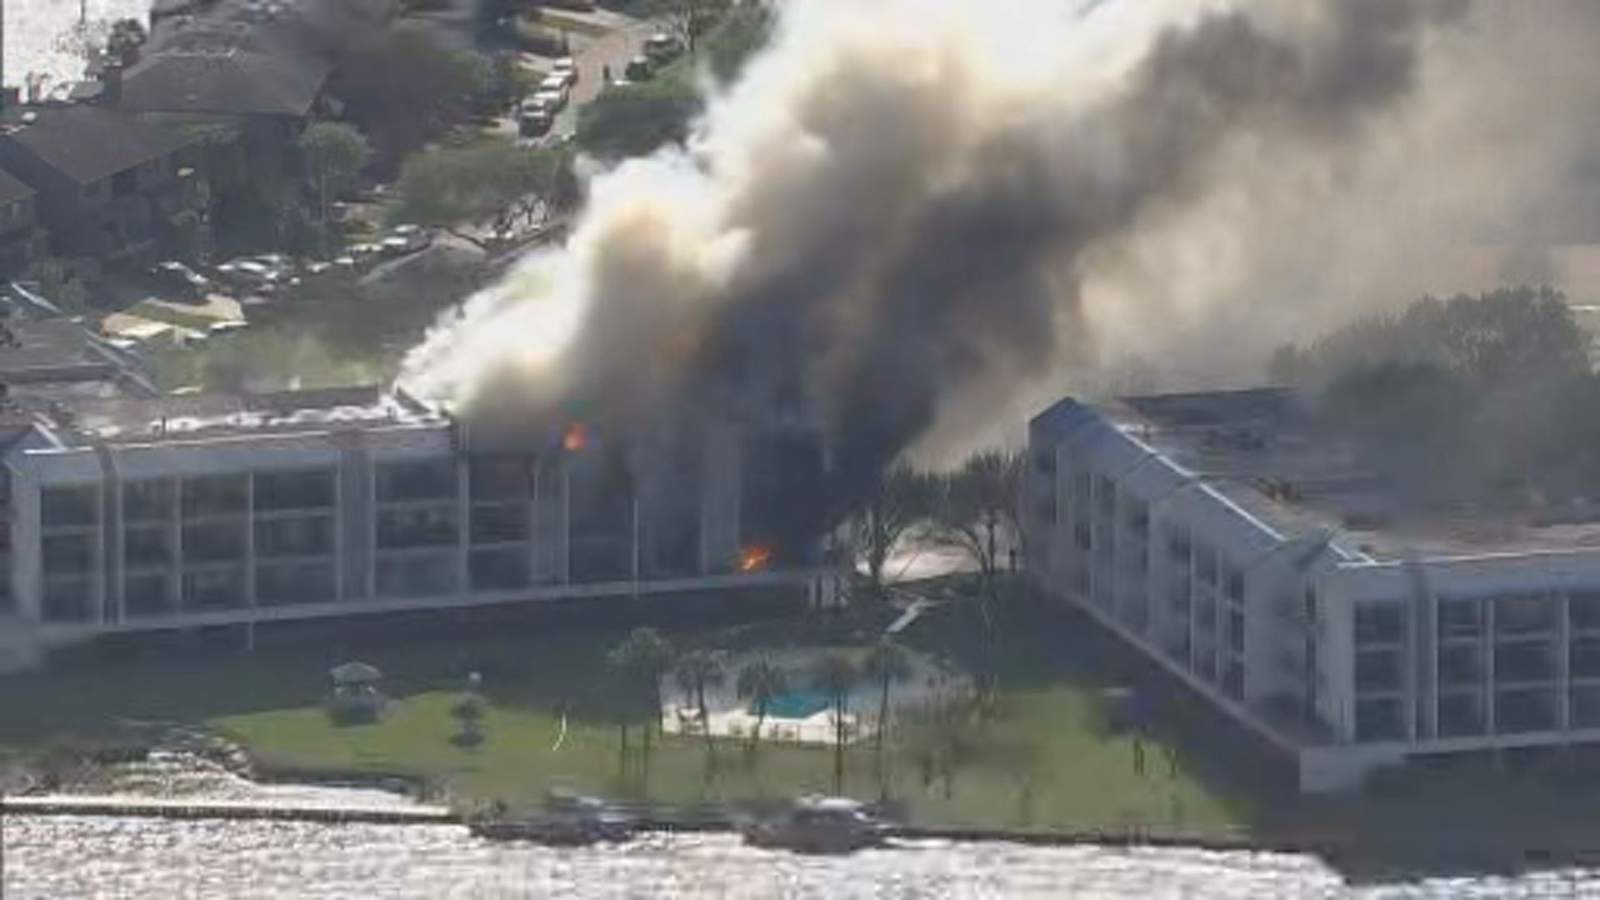 35% of condominium in Nassau Bay damaged after large fire